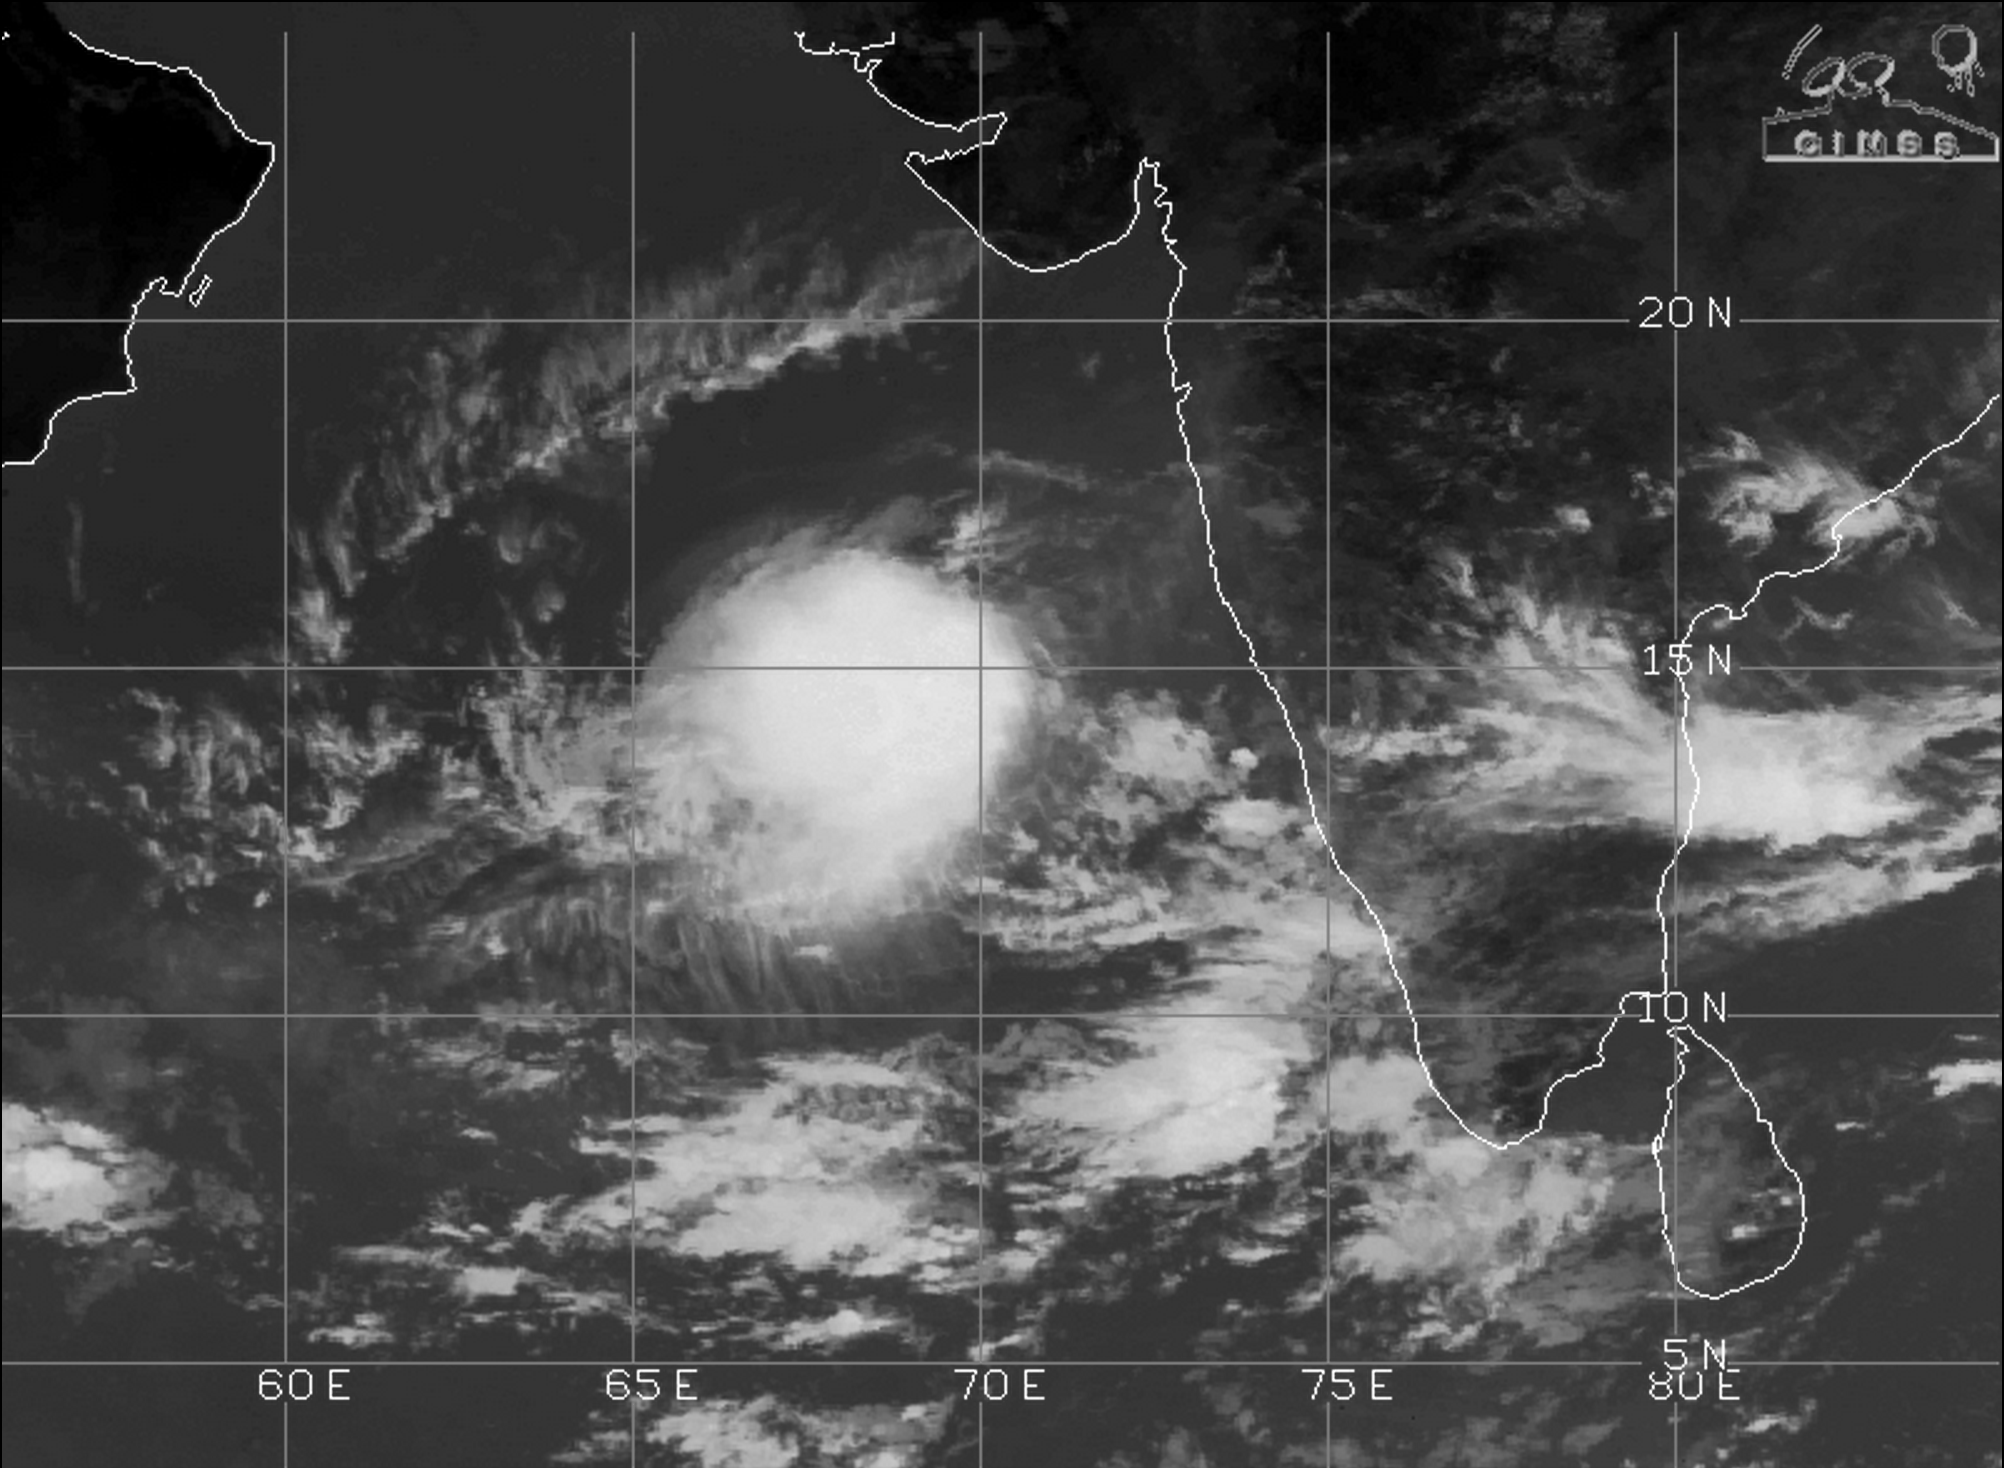 The image shows the formation of tropical depression in the Arabian Sea as can be seen in the satellite image on October 9  